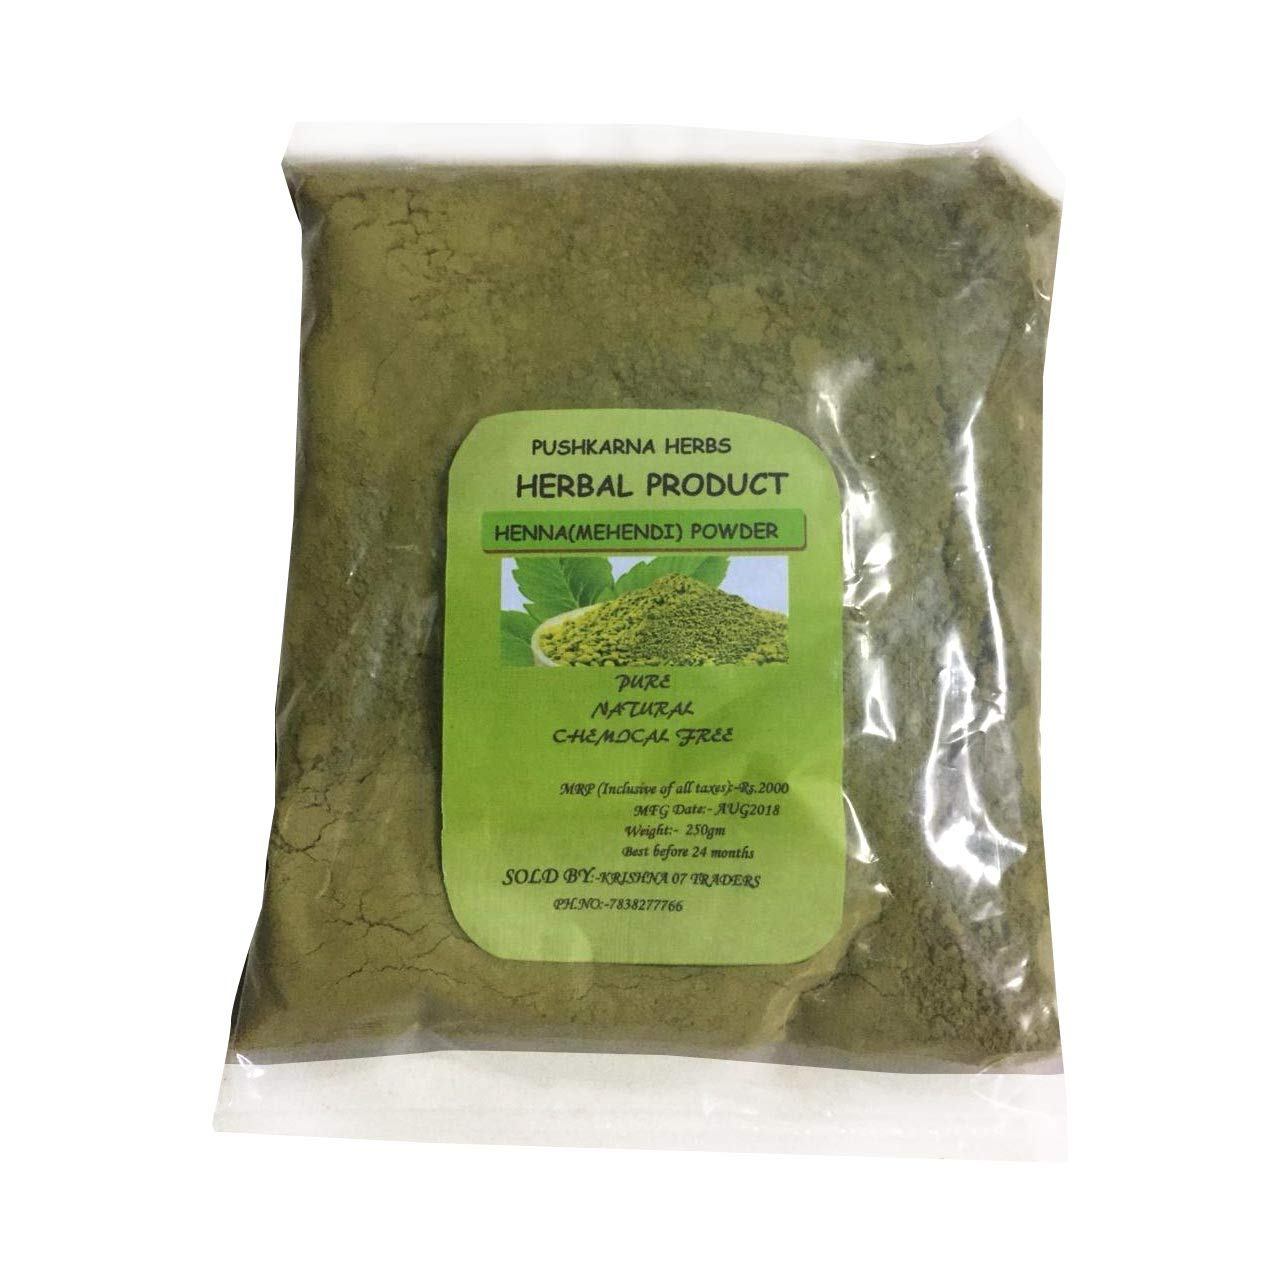 100% PURE HENNA HERBAL POWDER 250 gm product image